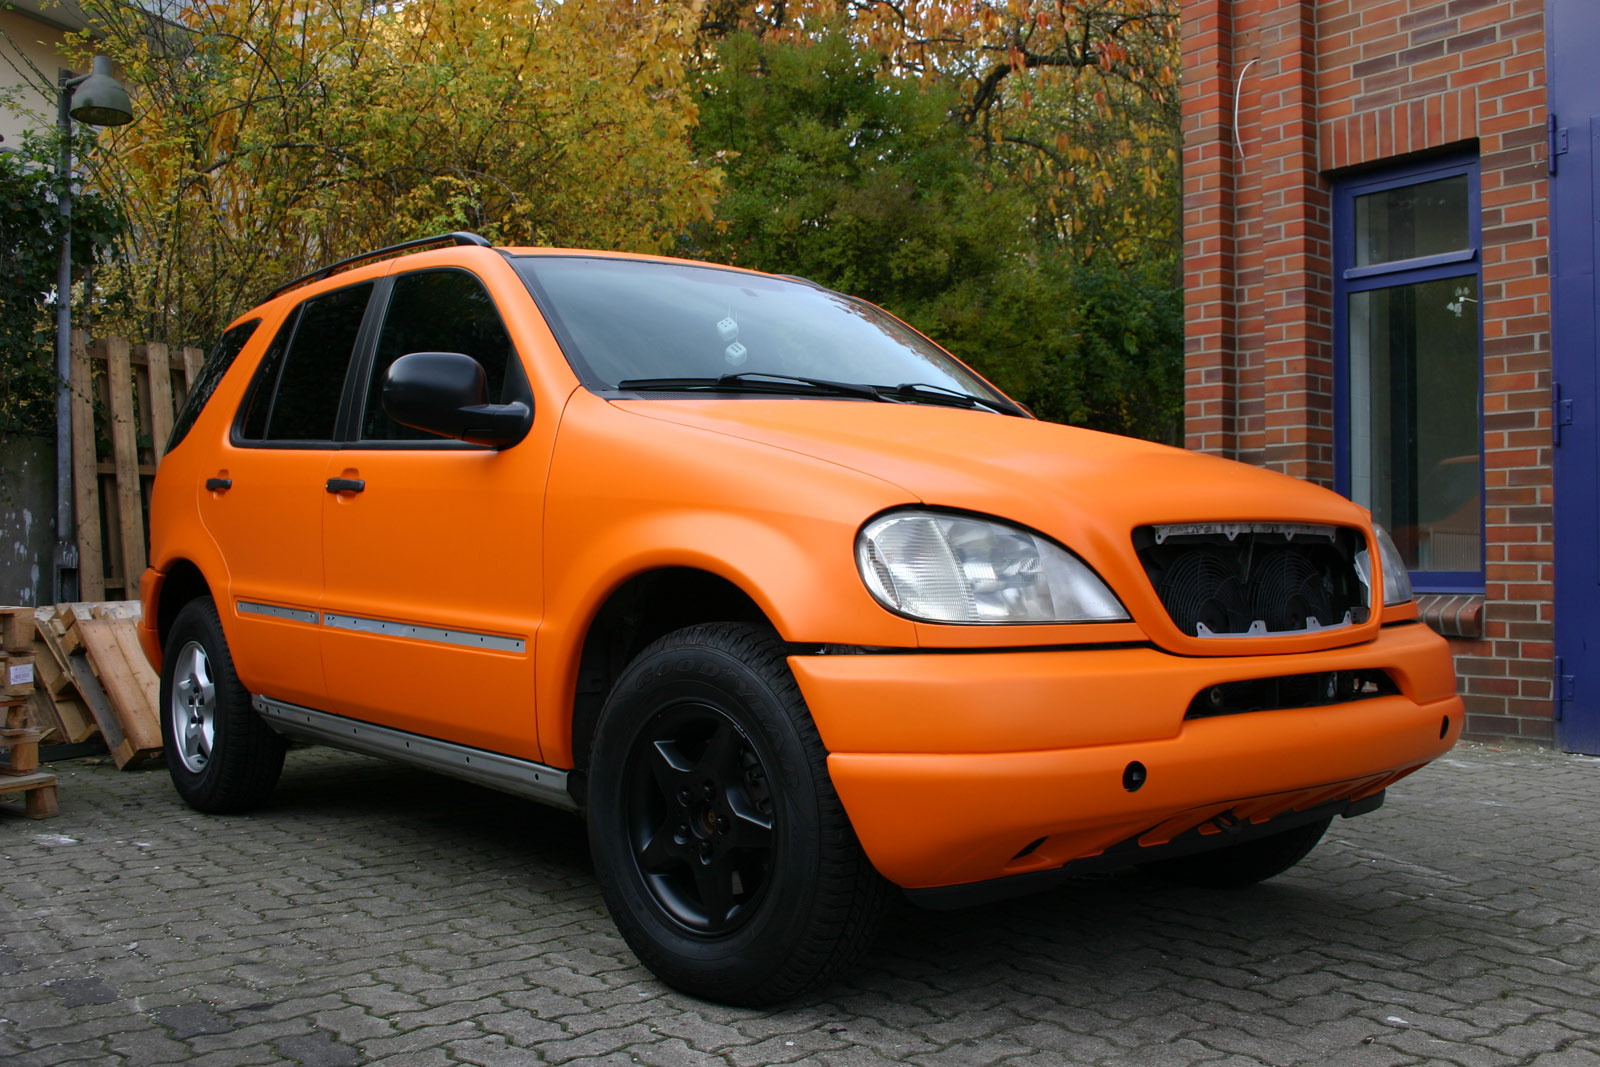 MERCEDES_ML_FOLIERUNG_ORANGE_MATT_10